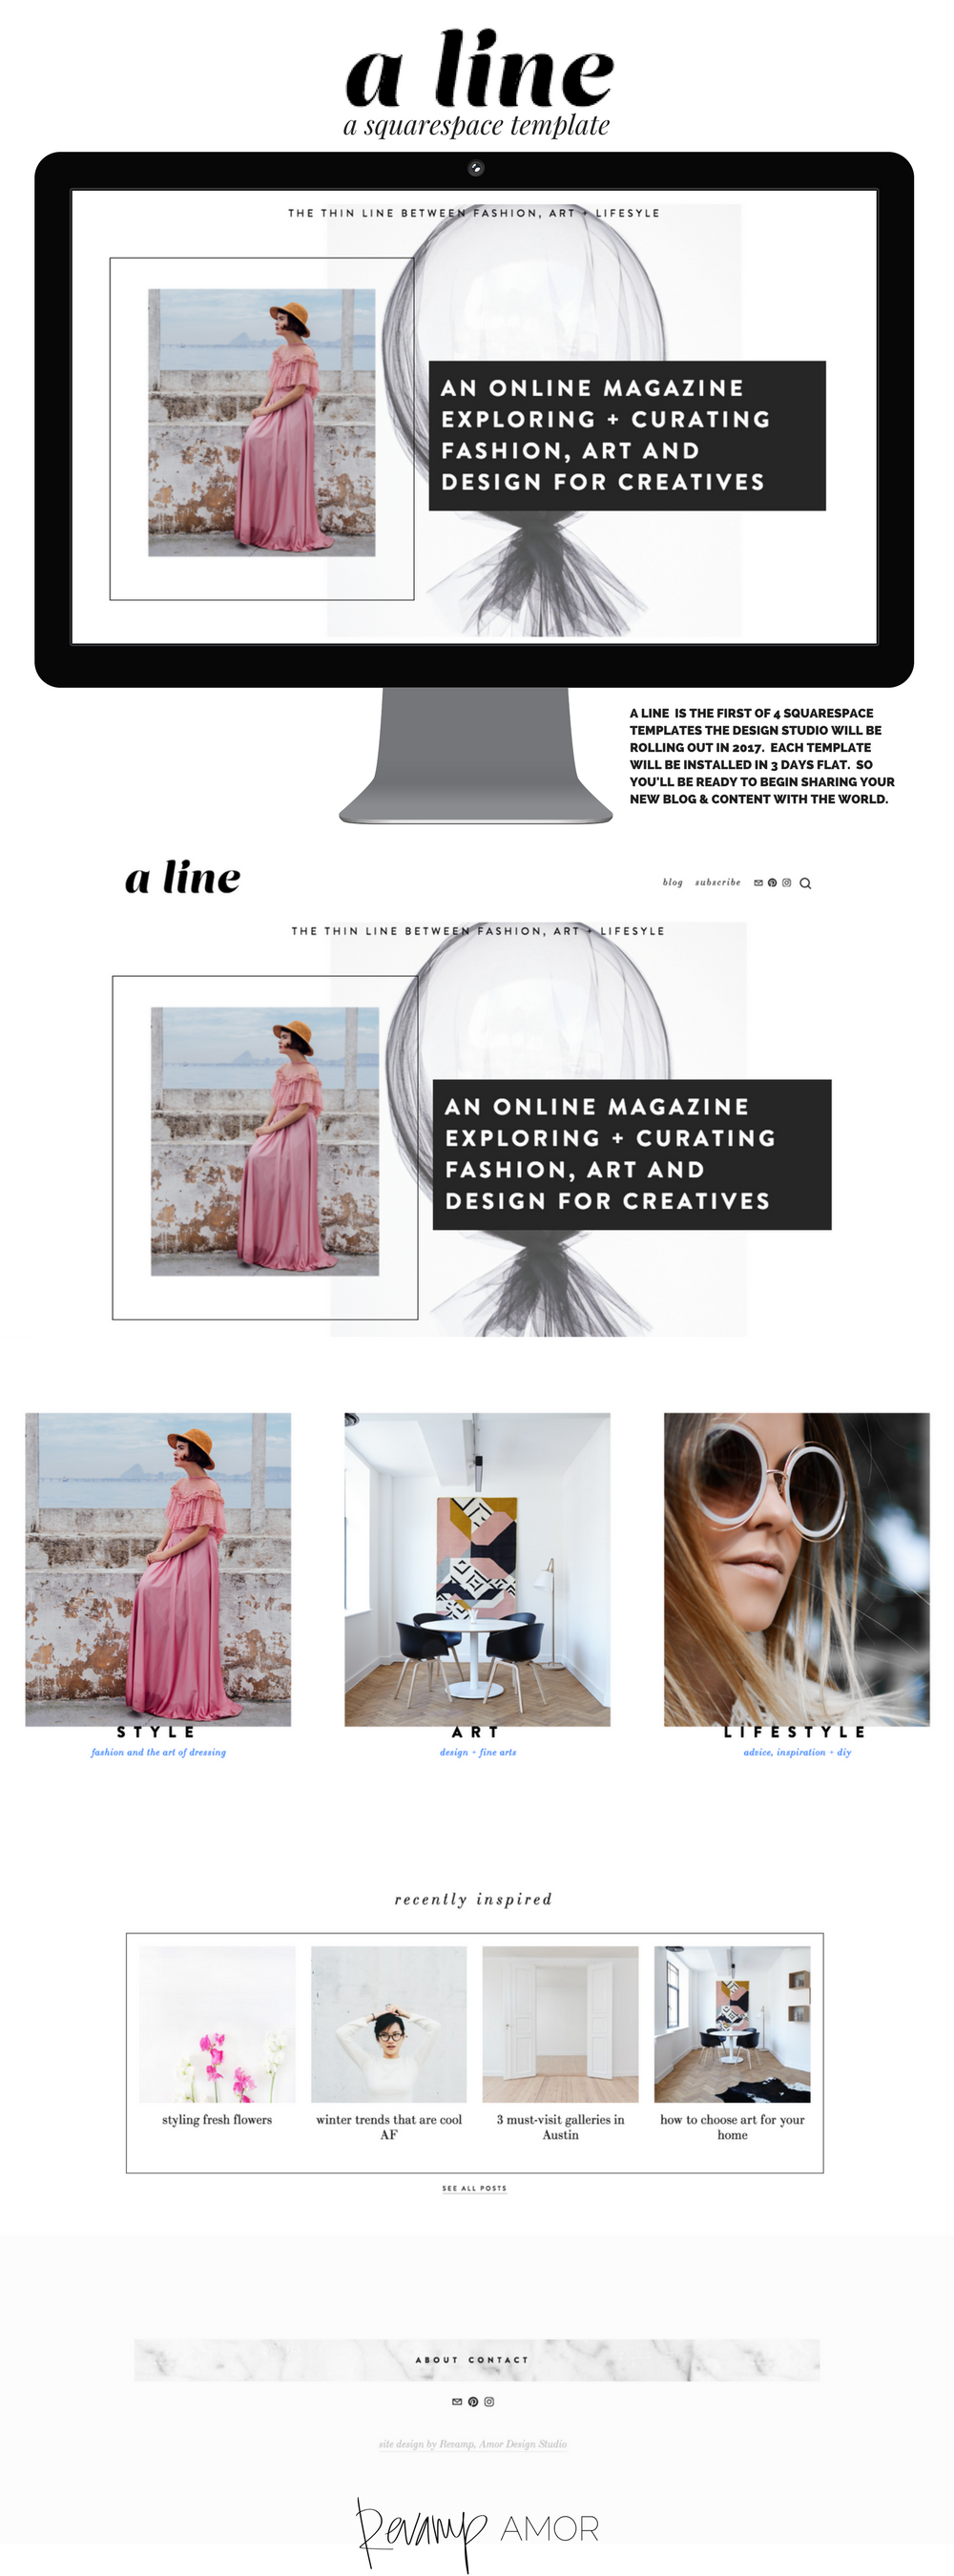 A LINE a squarespace template from the Revamp, Amor Design Studio